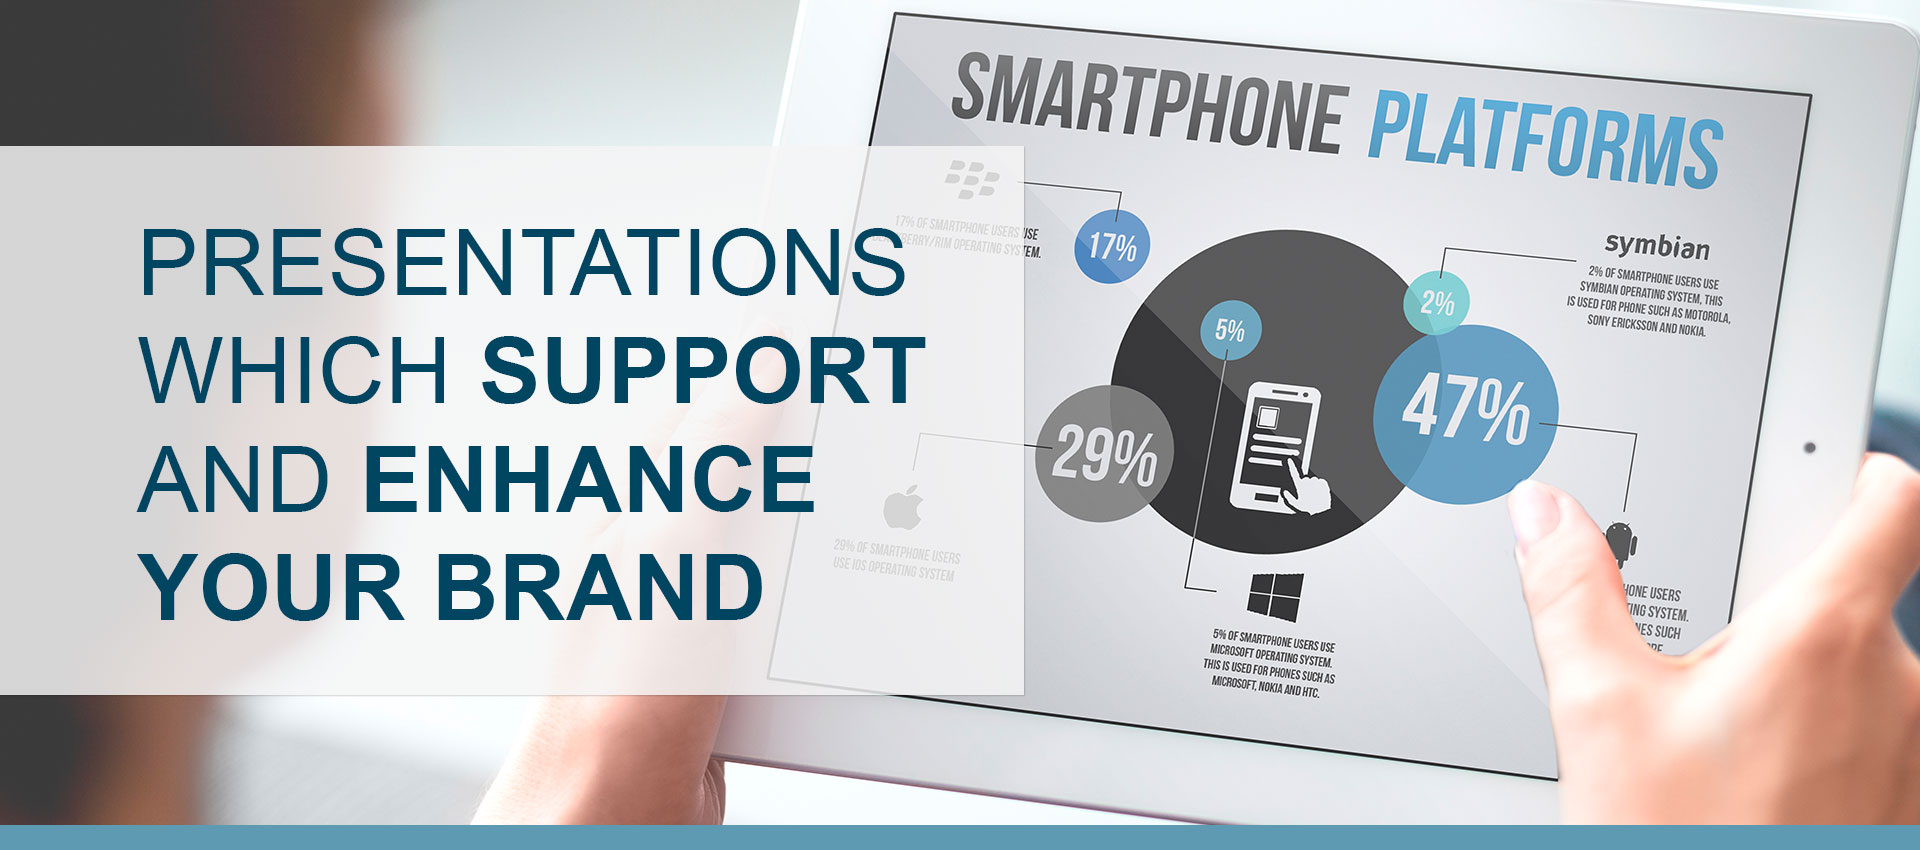 Presentations which support and enhance your brand